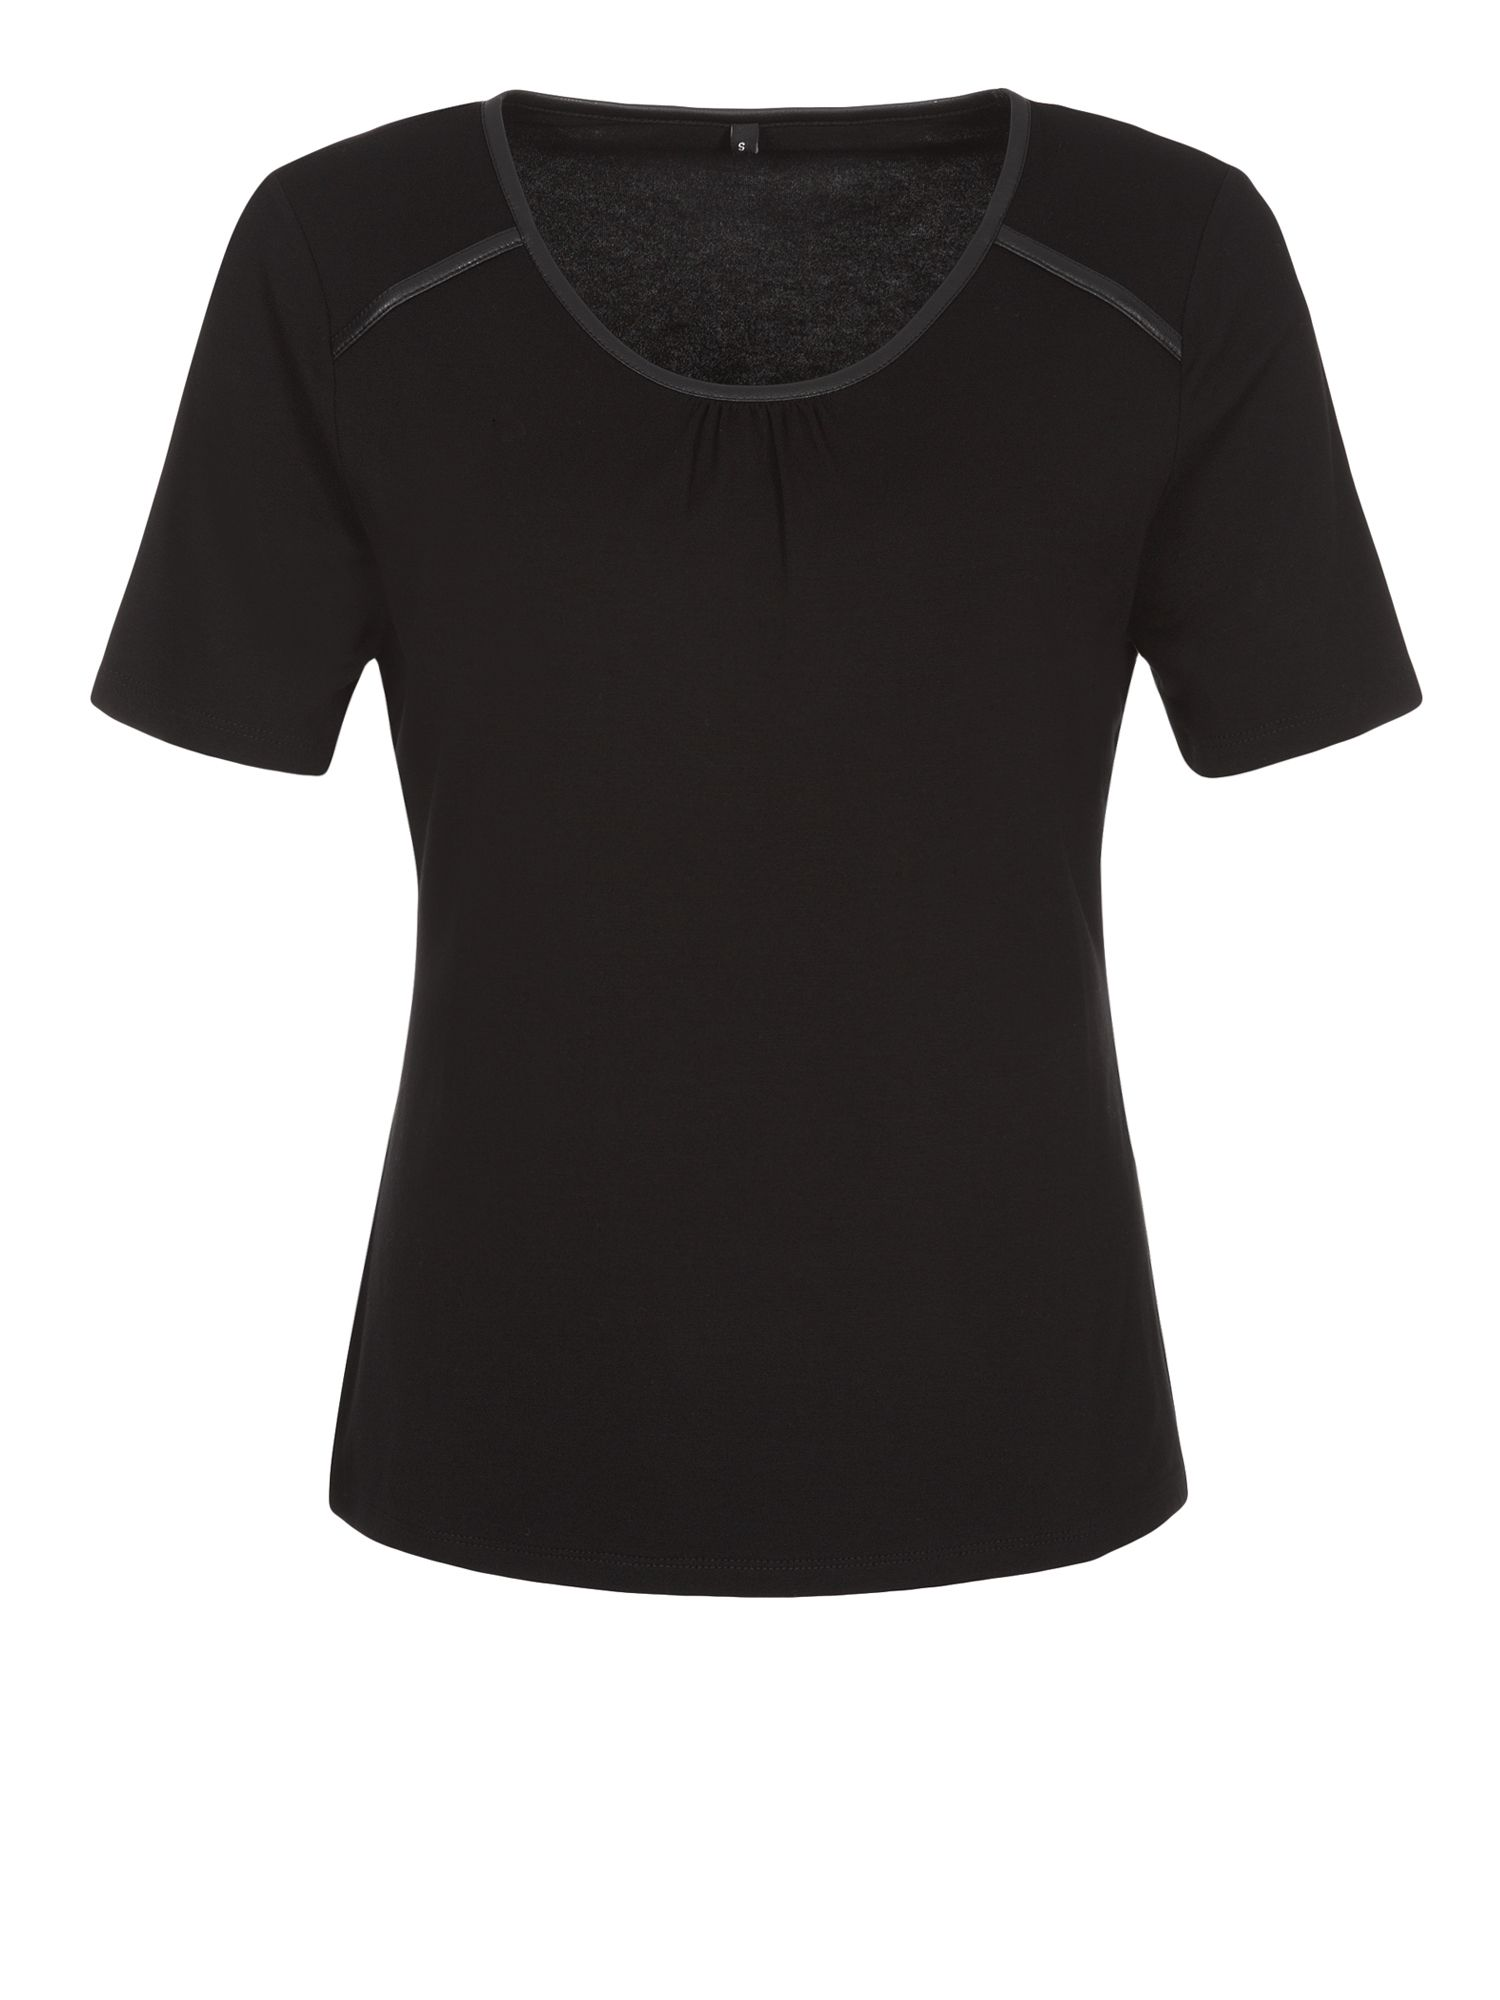 Black contrast trim top